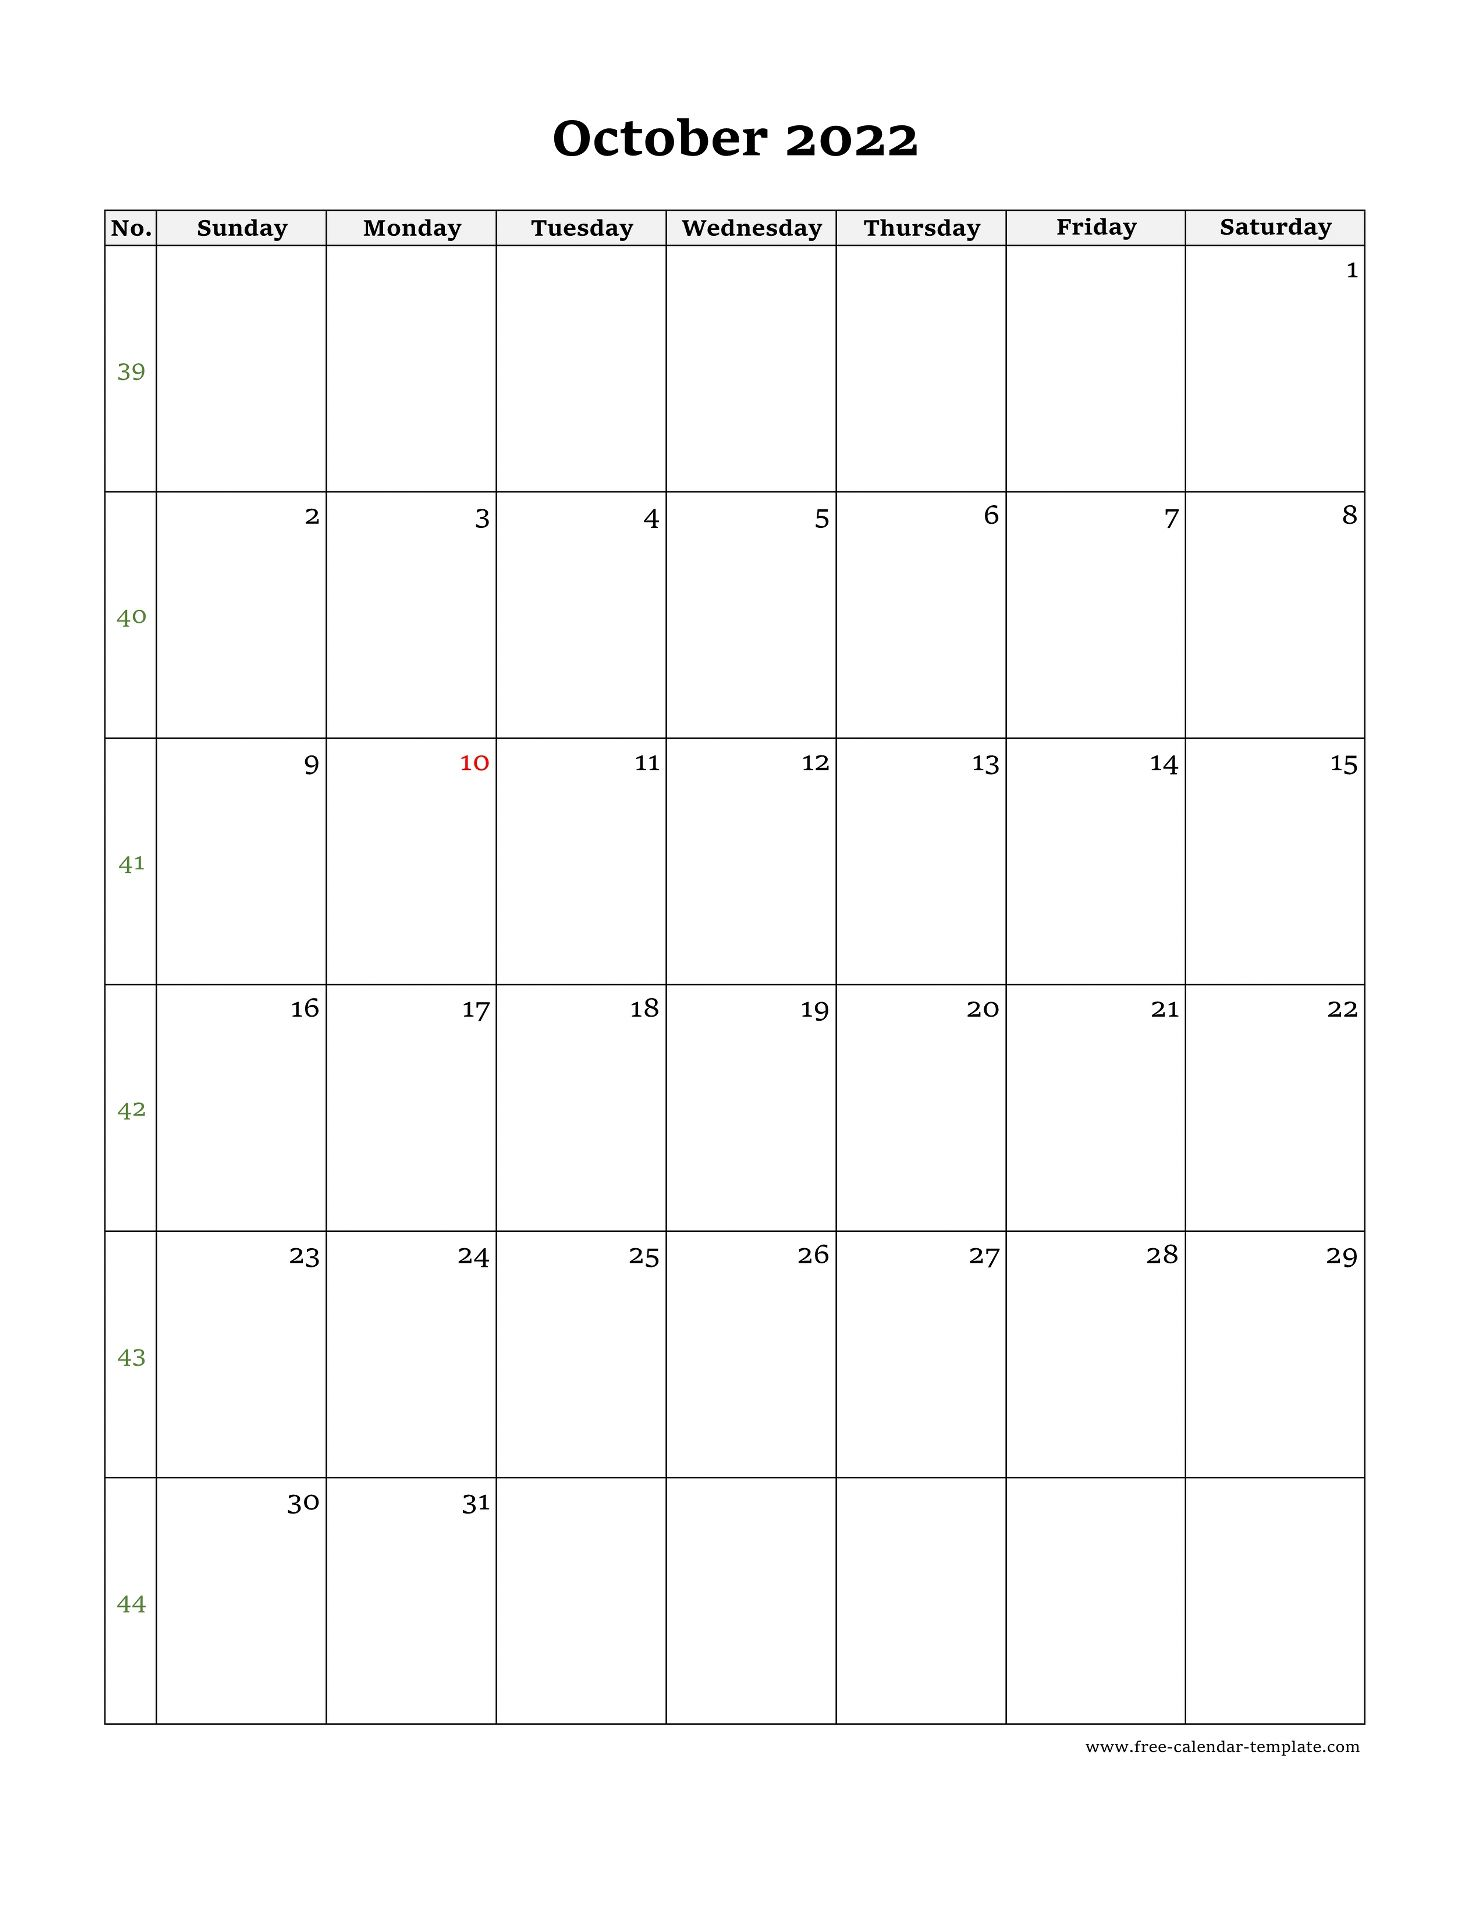 2022 Calendar October.October Calendar 2022 Simple Design With Large Box On Each Day For Notes Free Calendar Template Com